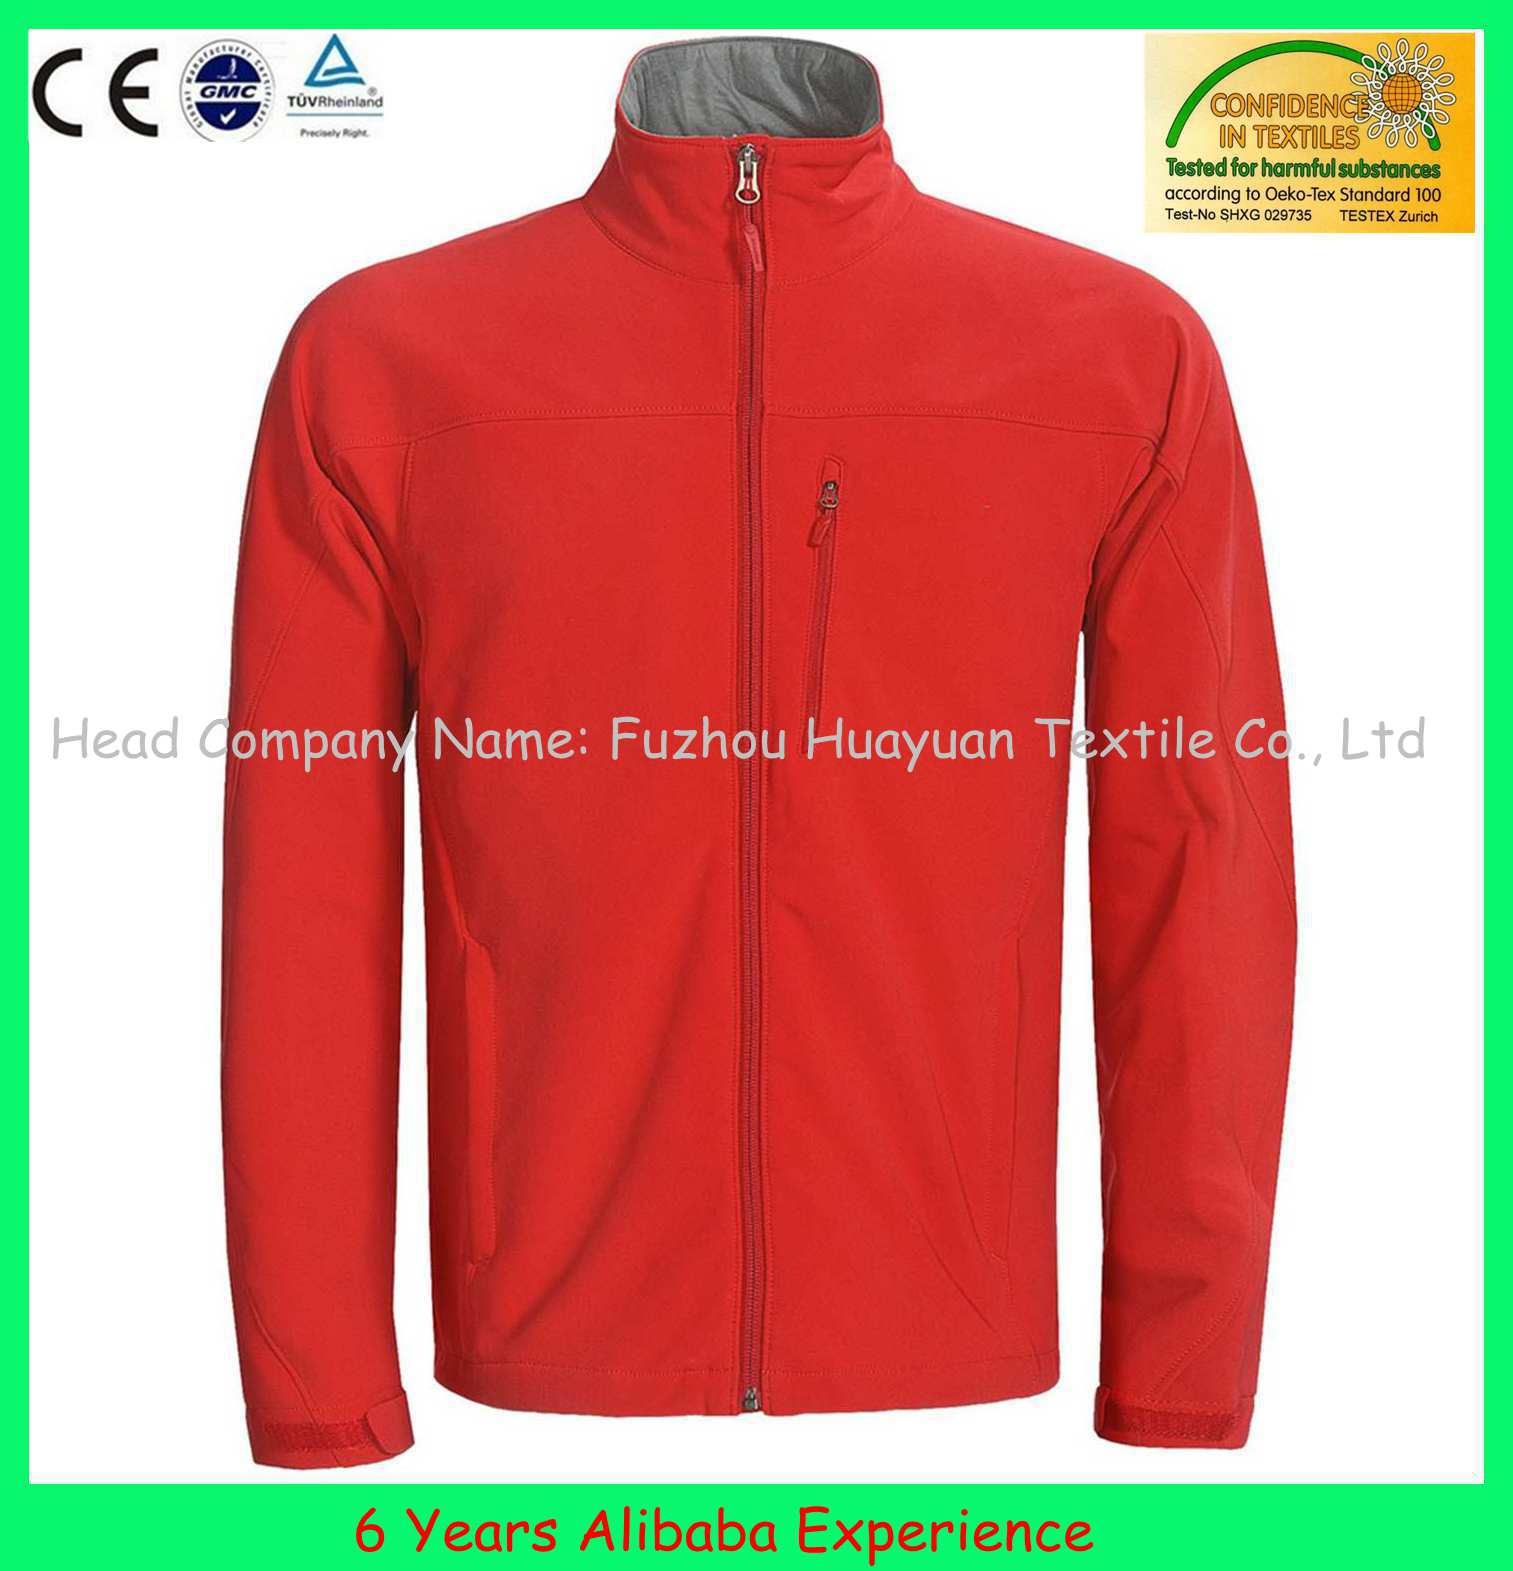 2015 fashion windproof waterproof jackets breathable outdoor sports coats - 6 Years Alibaba Experience)